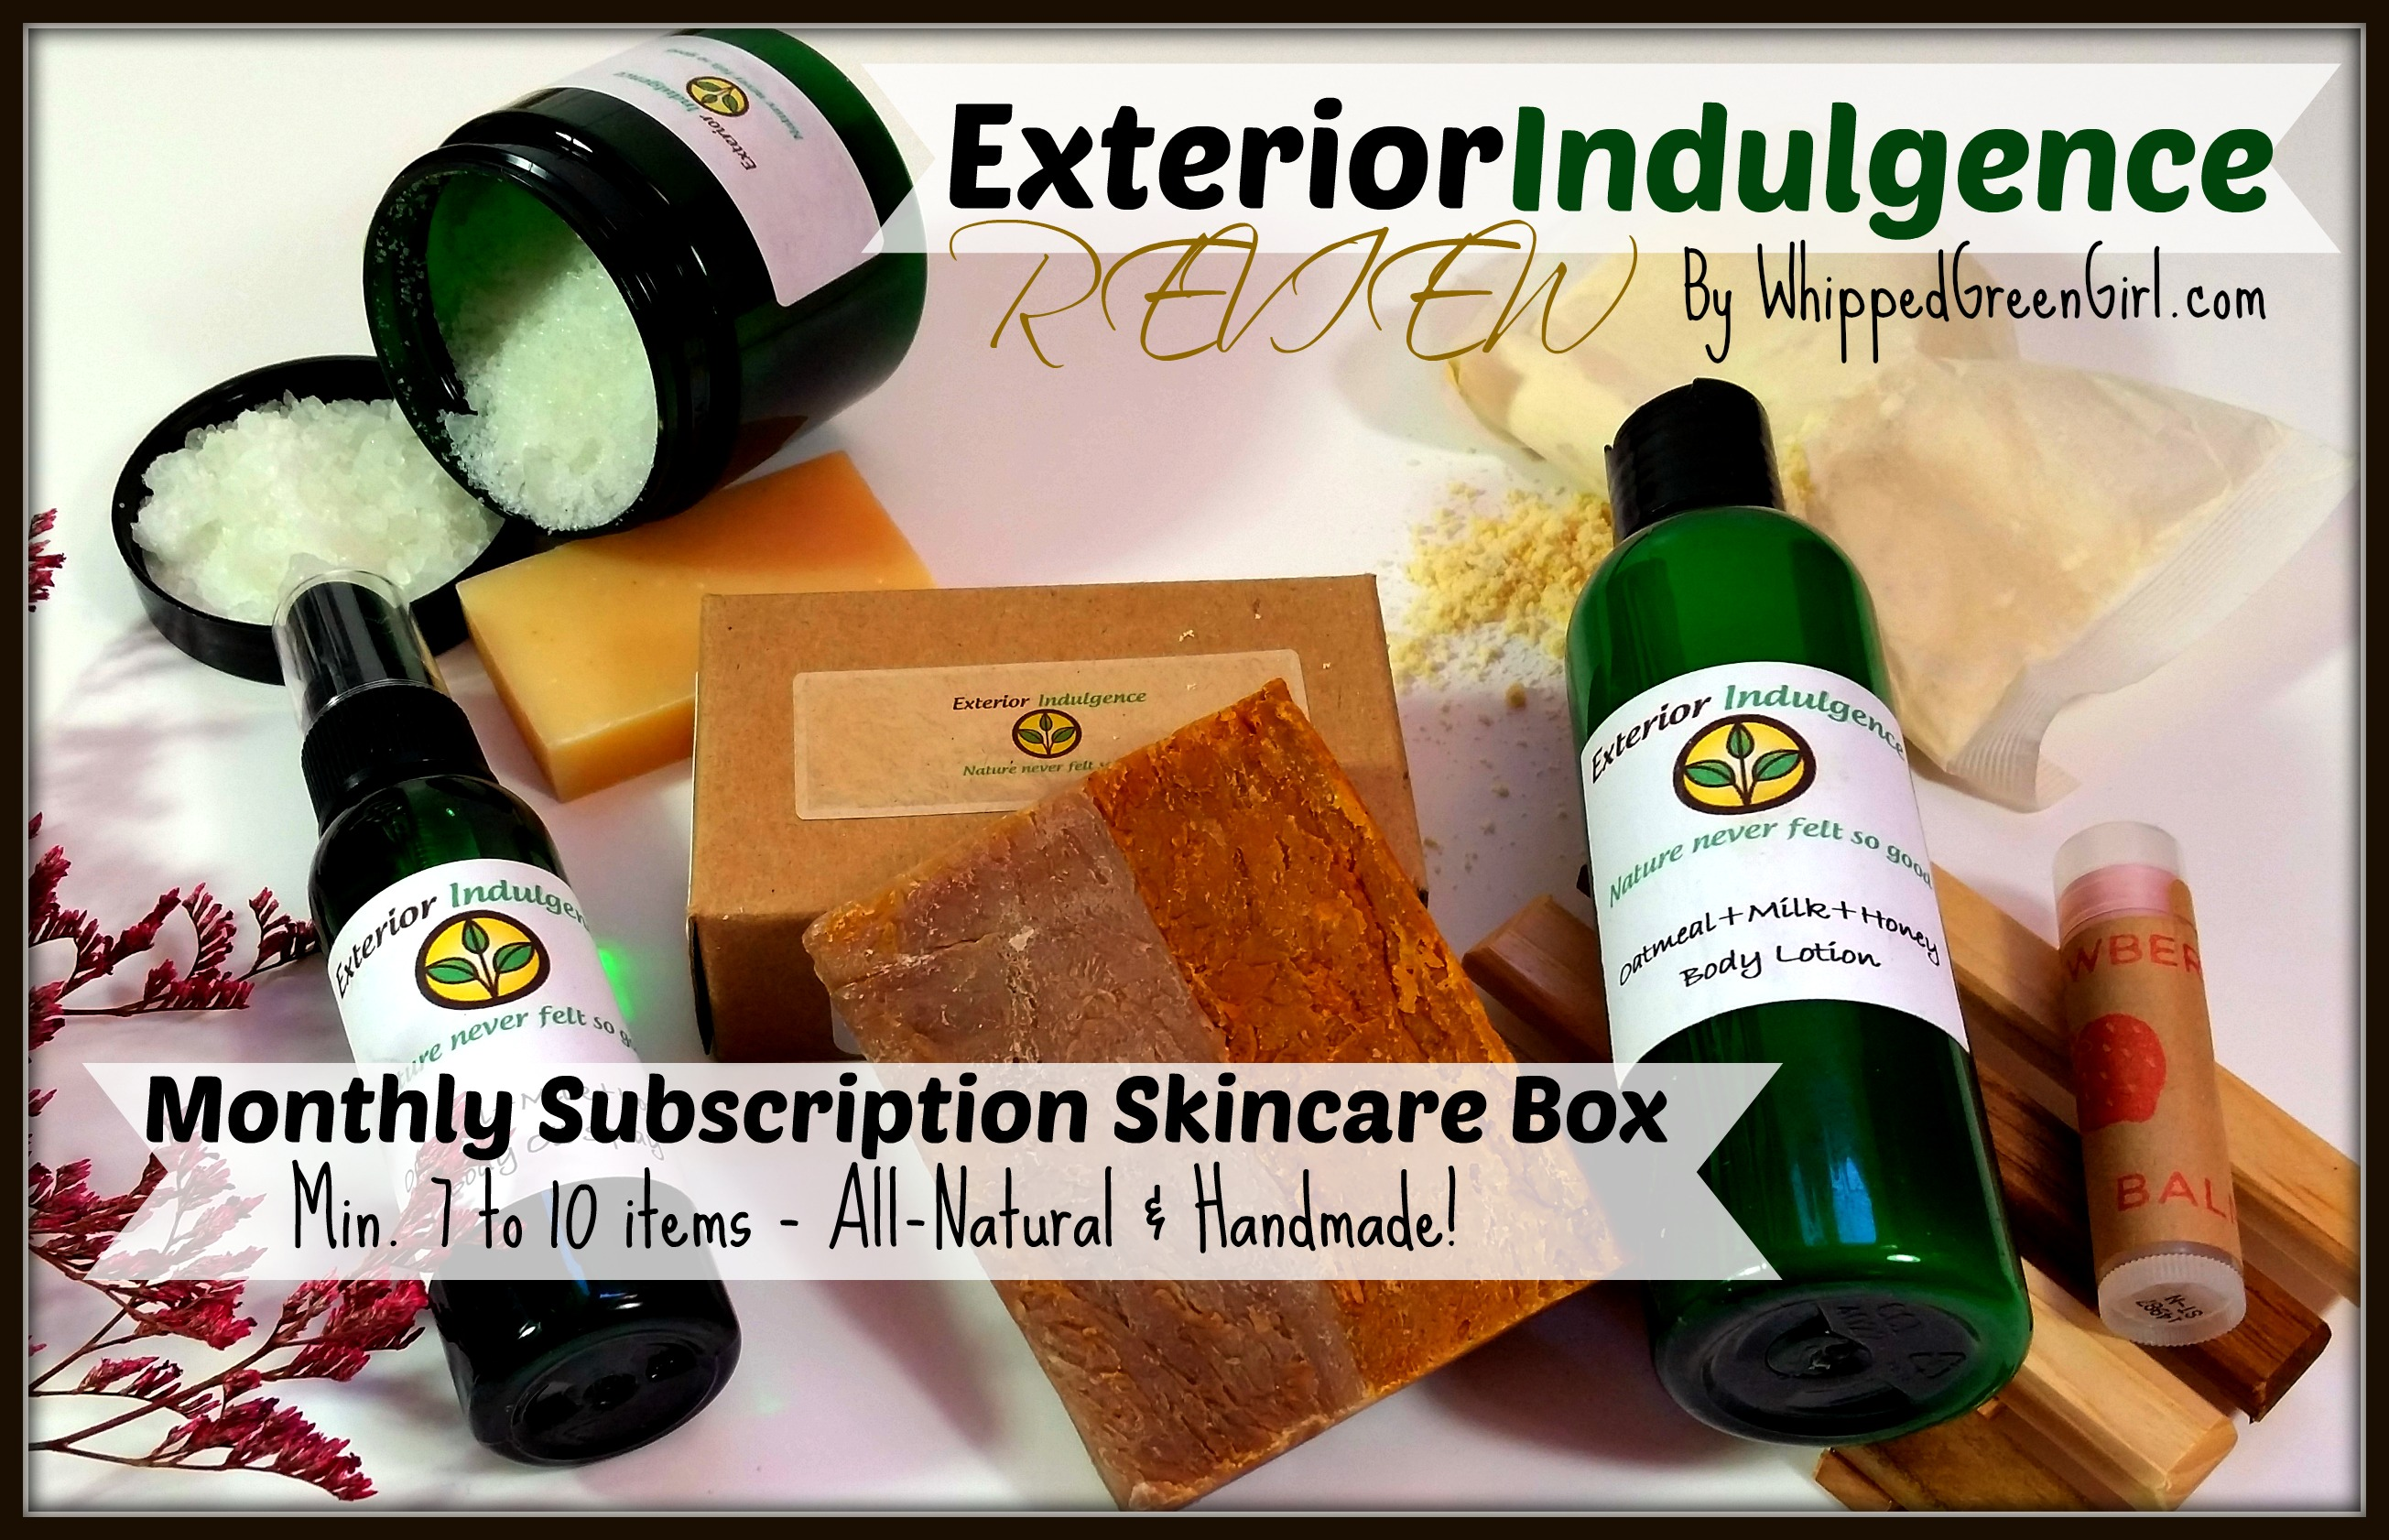 Exterior Indulgence Review - By WhippedGreenGirl.com (February Subscription Box) #Etsy - #Handmade #Skincare!